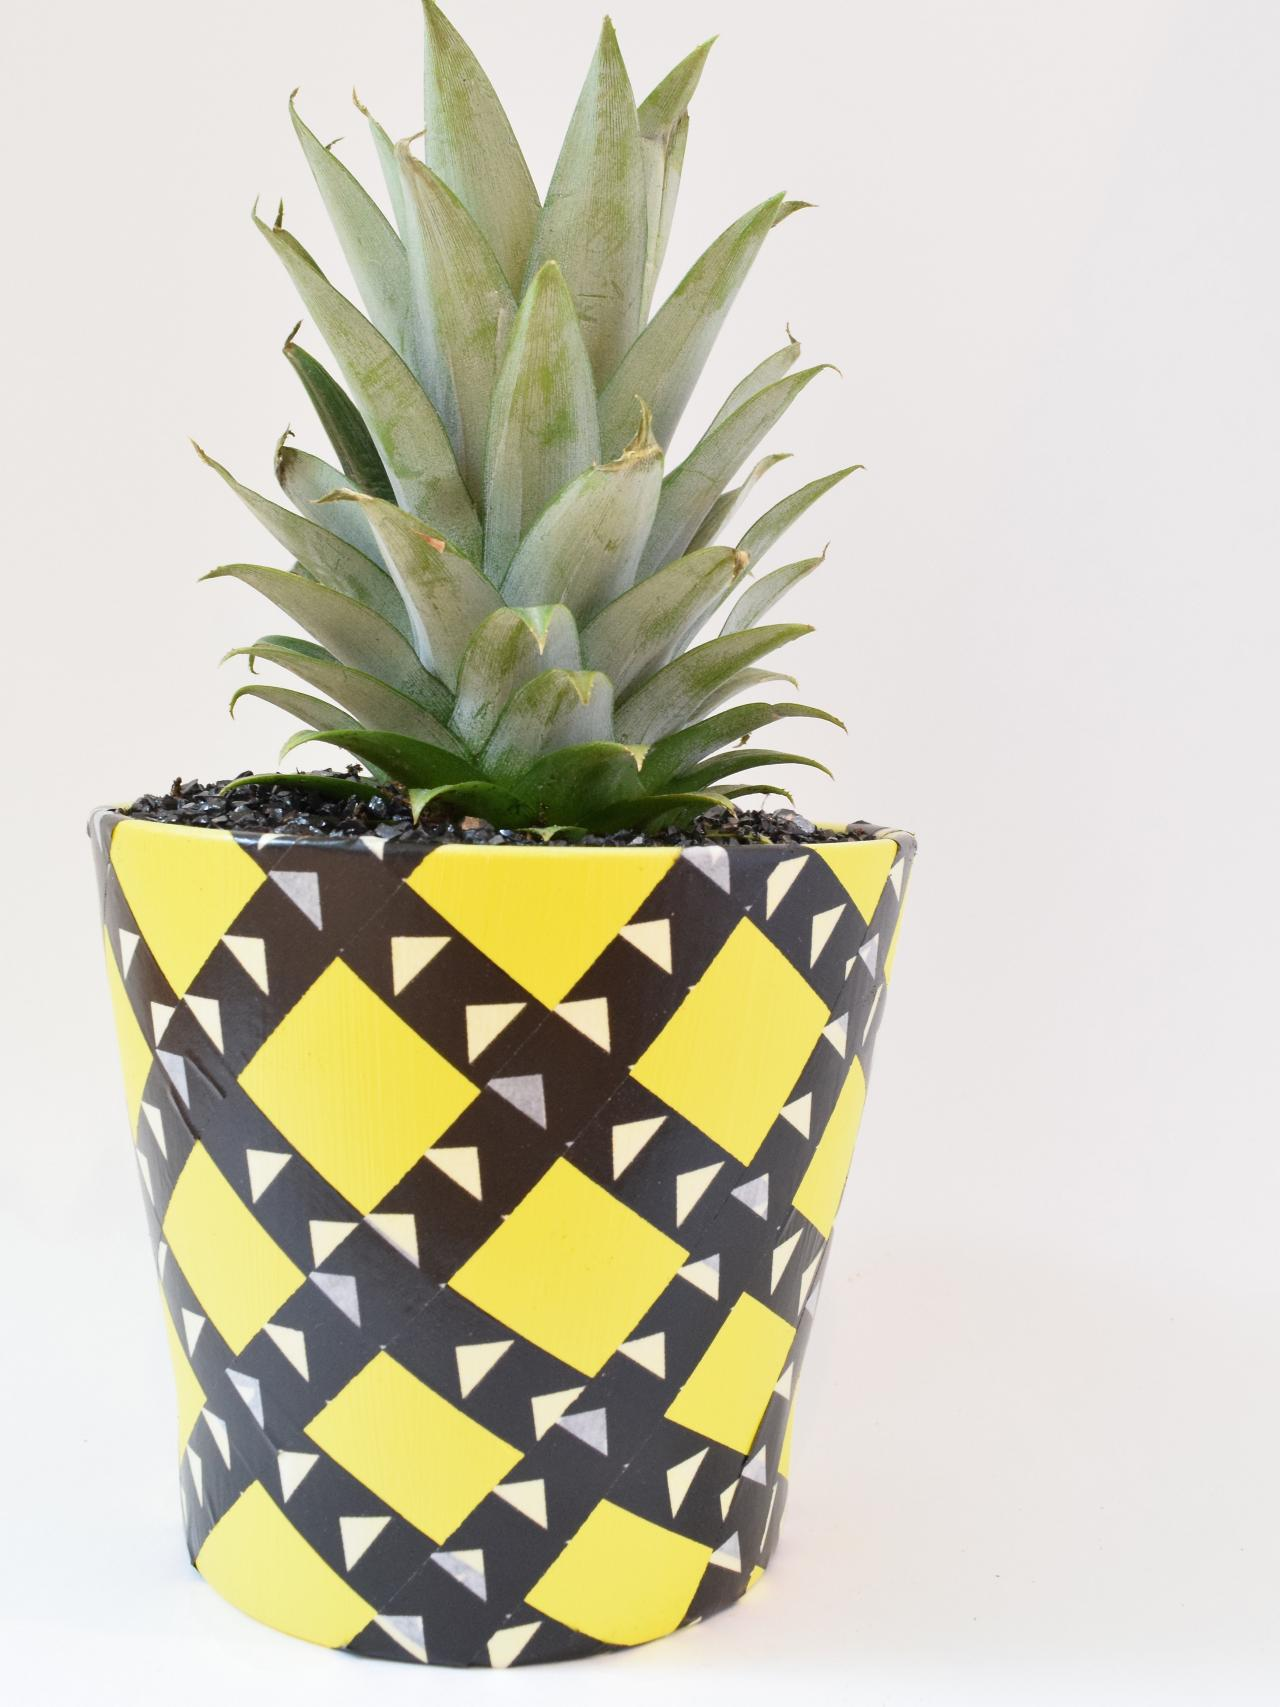 How to Grow a Pineapple and Make a Pineapple Planter | how-tos | DIY